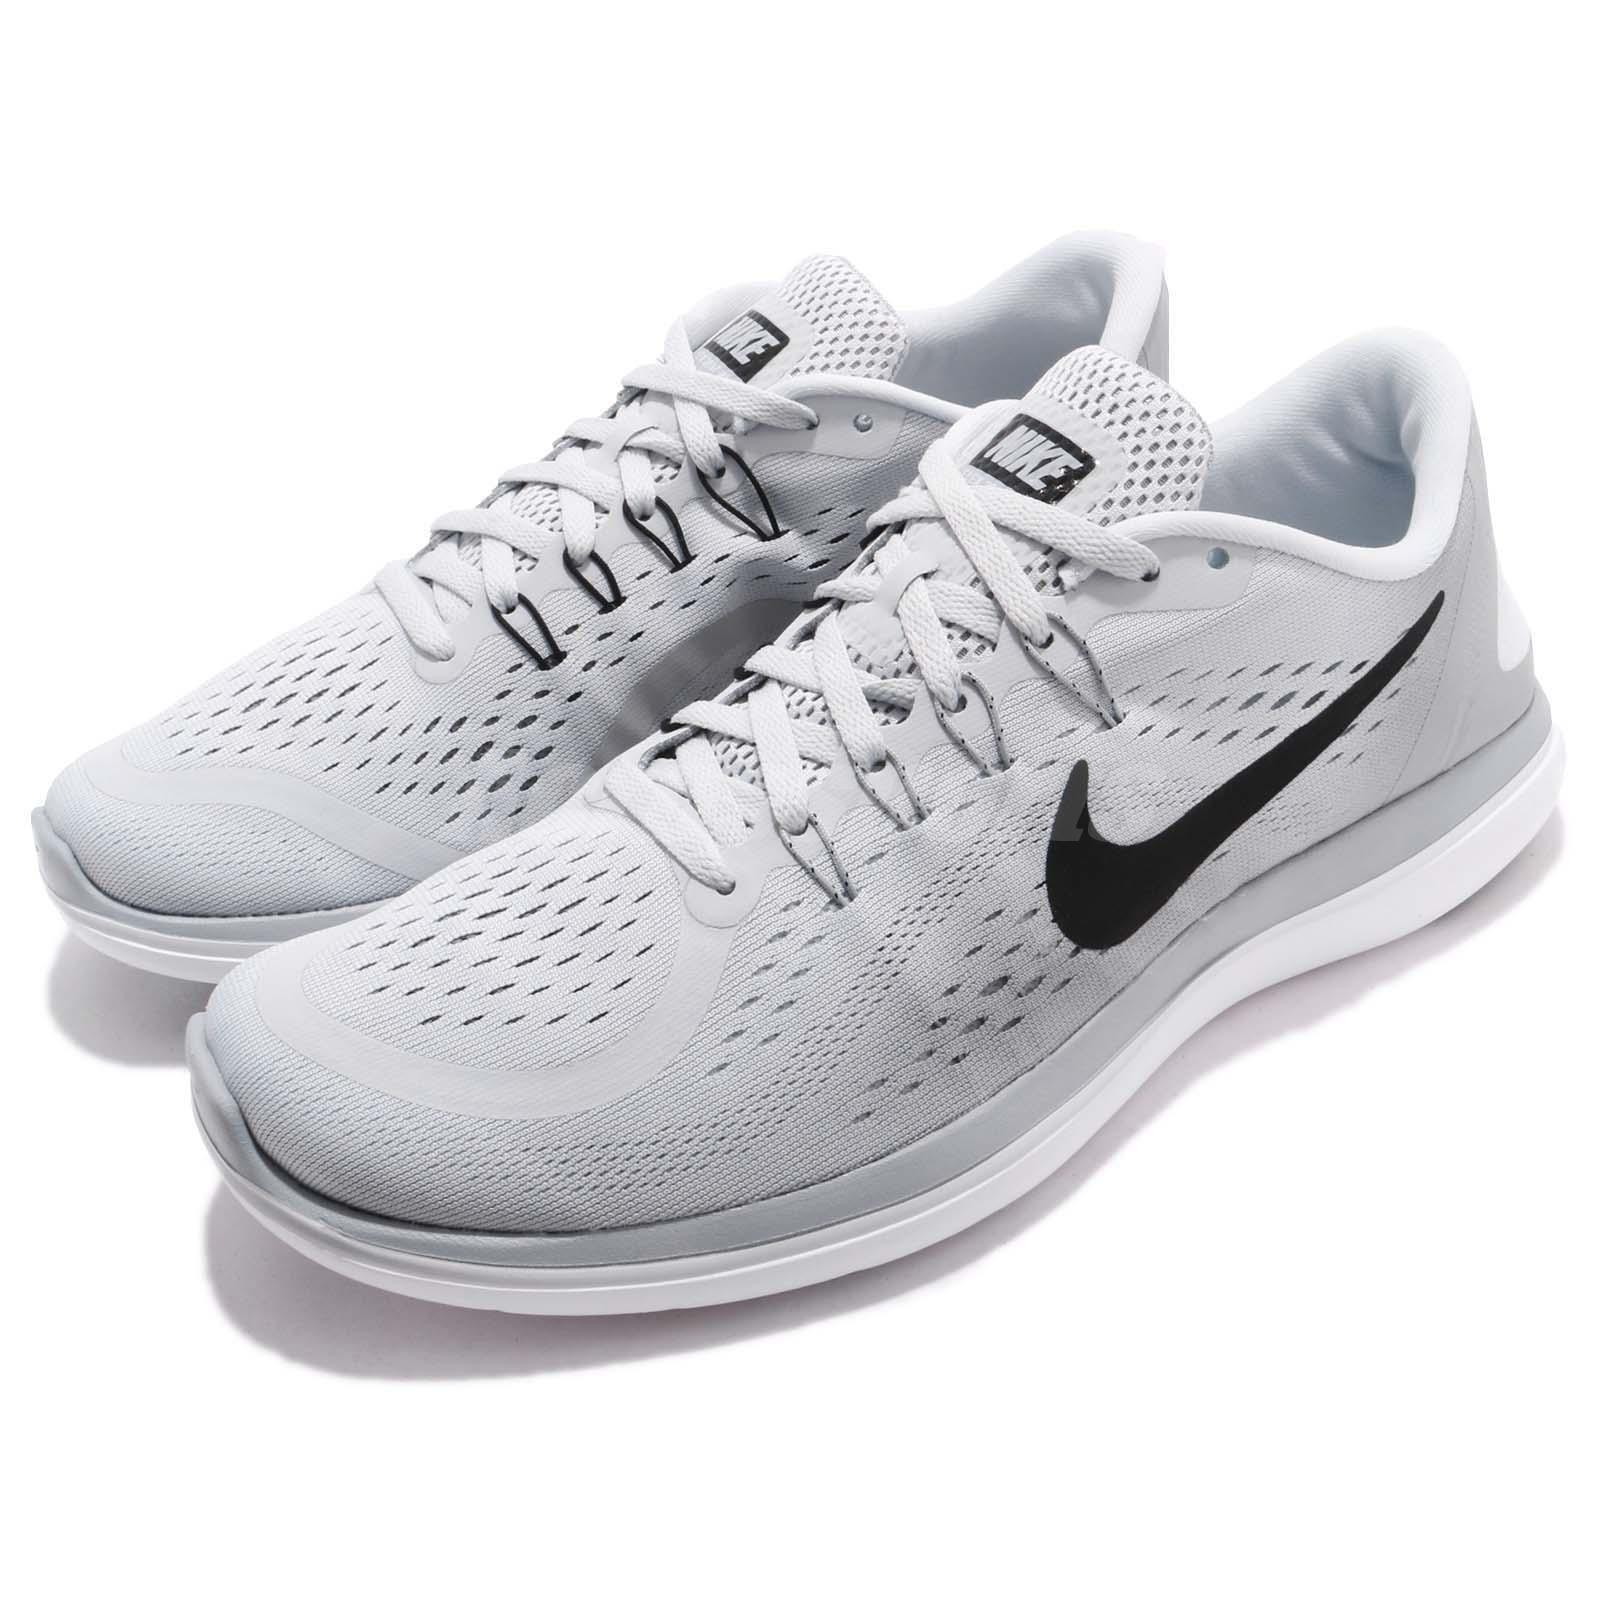 0623d55e3bf9 Details about Nike Flex 2017 RN Running Pure Platinum Wolf Grey Men Running  Shoes 898457-002